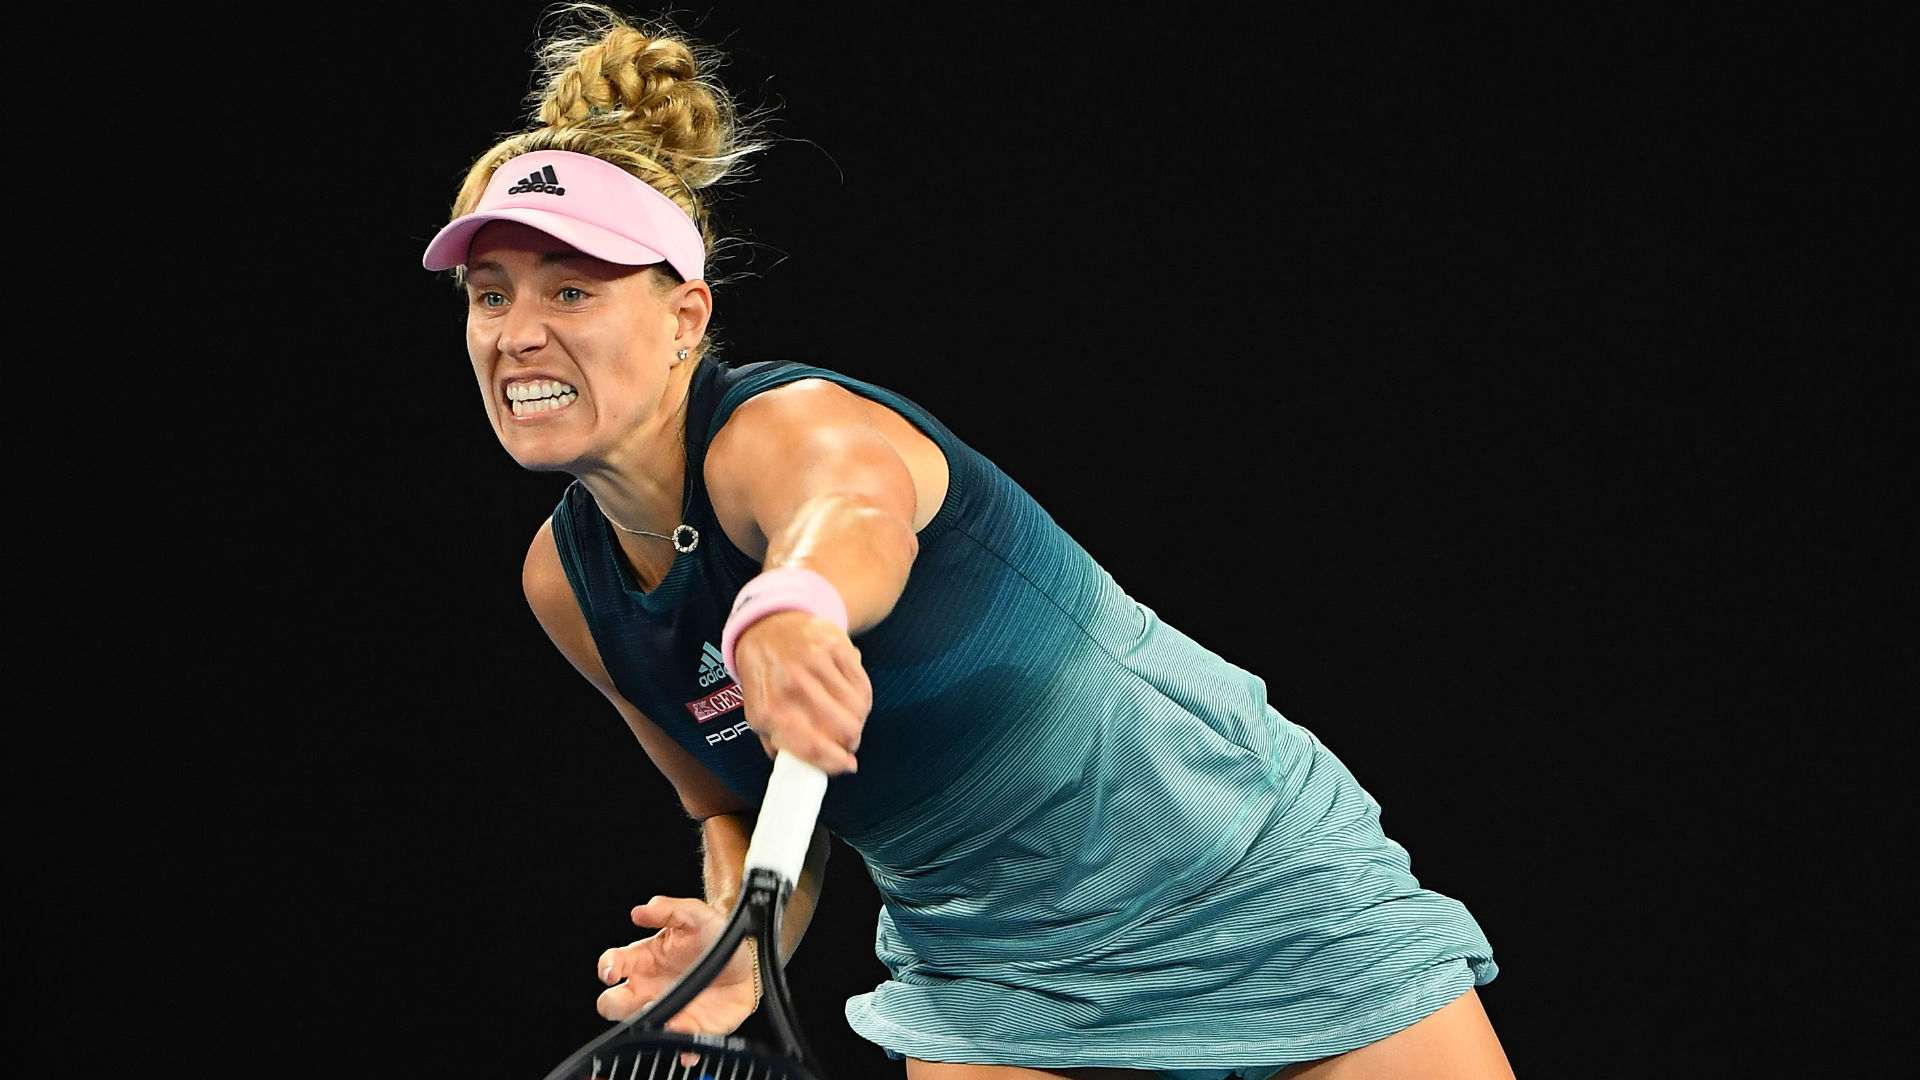 Halep and Kerber deliver in Doha after Pliskova withdrawal